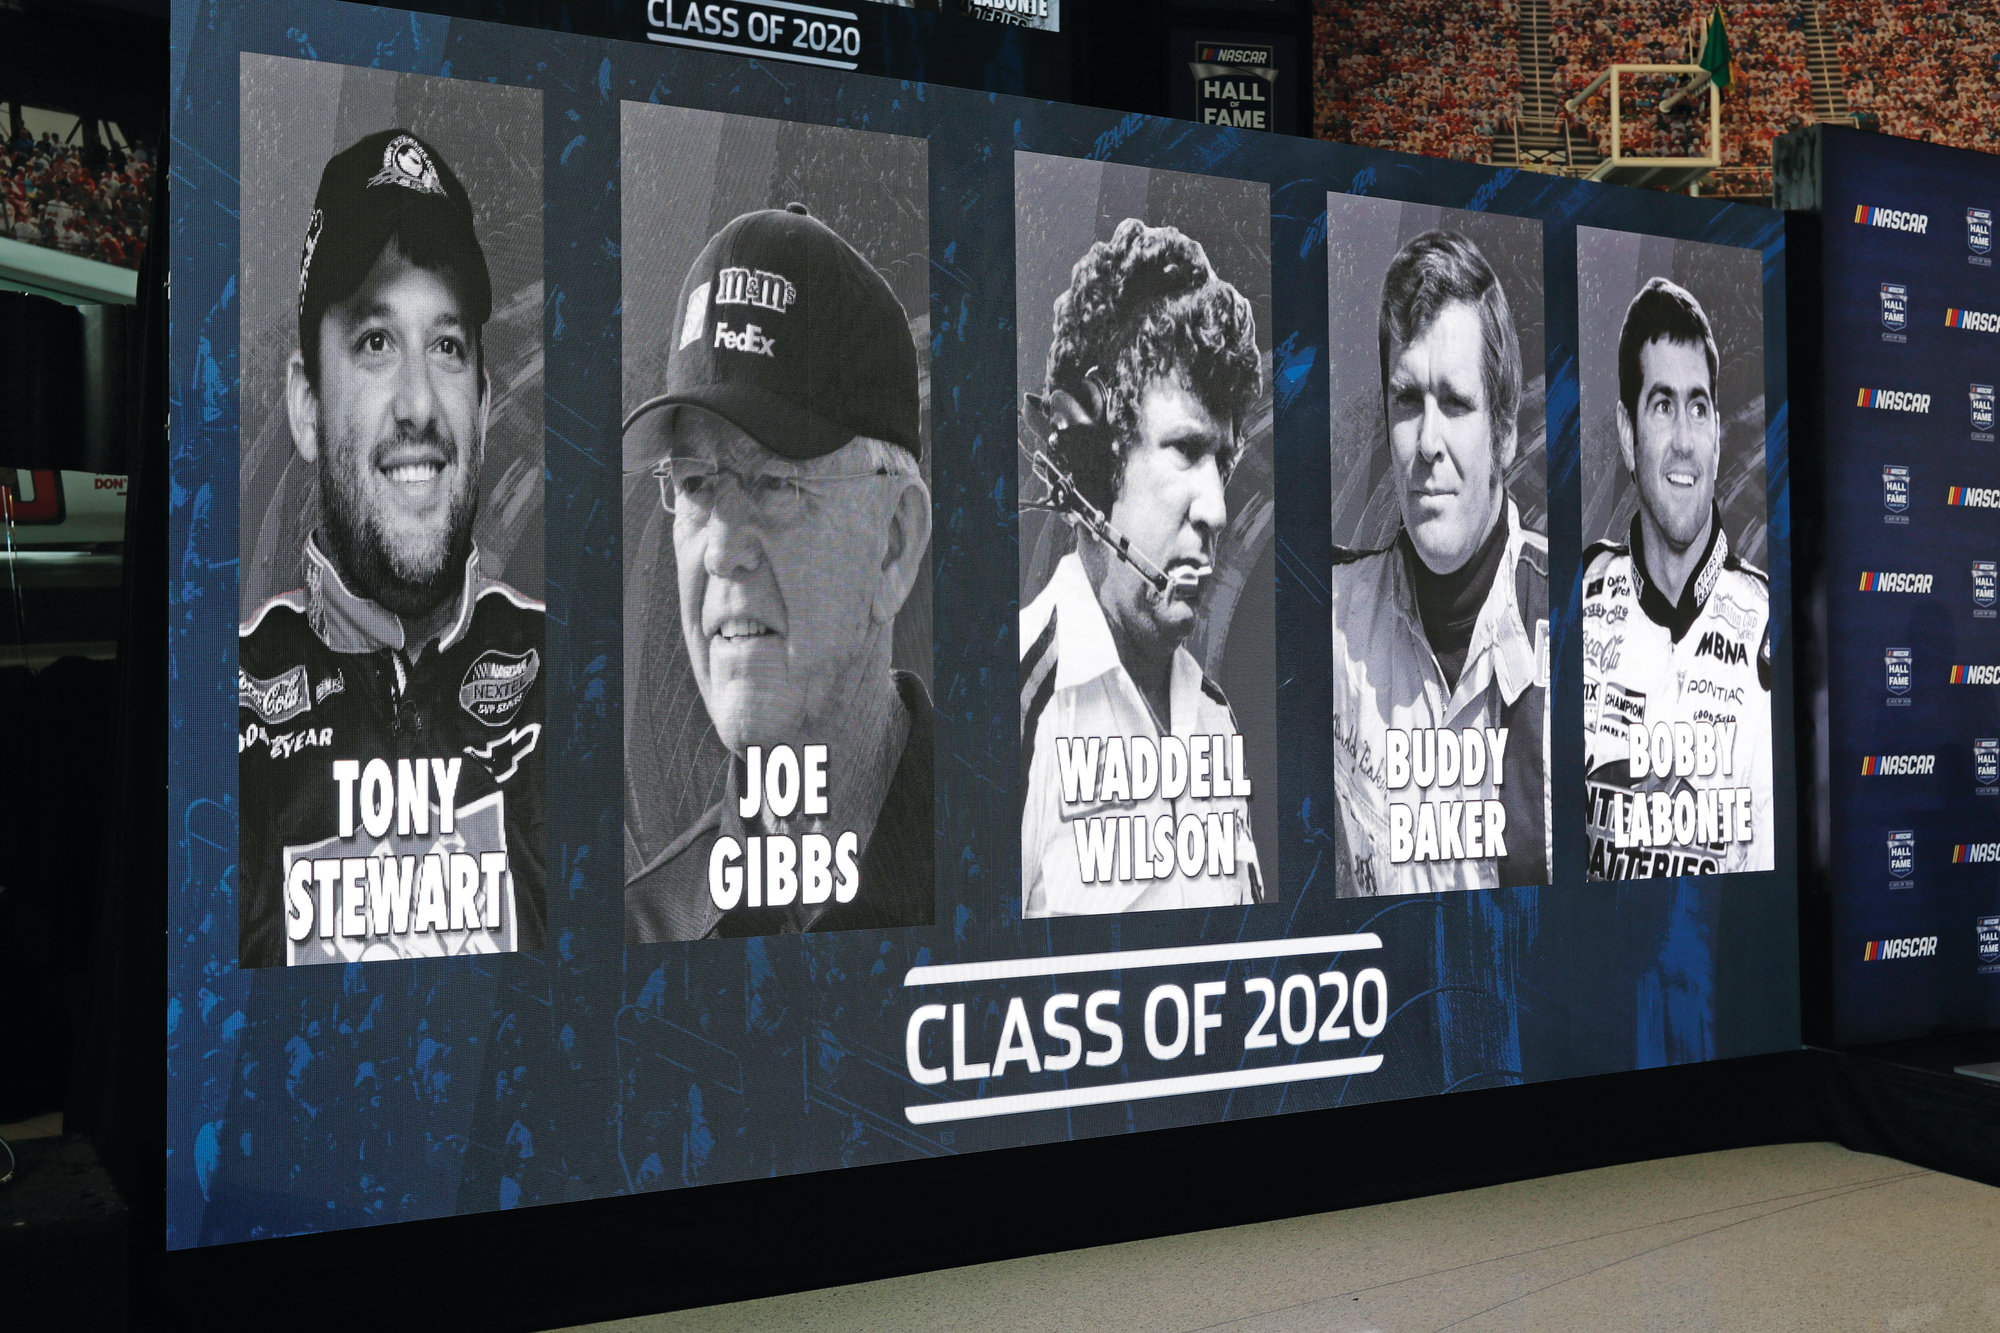 Images of Tony Stewart, Joe Gibbs, Waddell Wilson, Buddy Baker and Bobby Labonte, left to right, are shown during the announcement of them being the 2020 NASCAR Hall of Fame class on Wednesday in Charlotte.